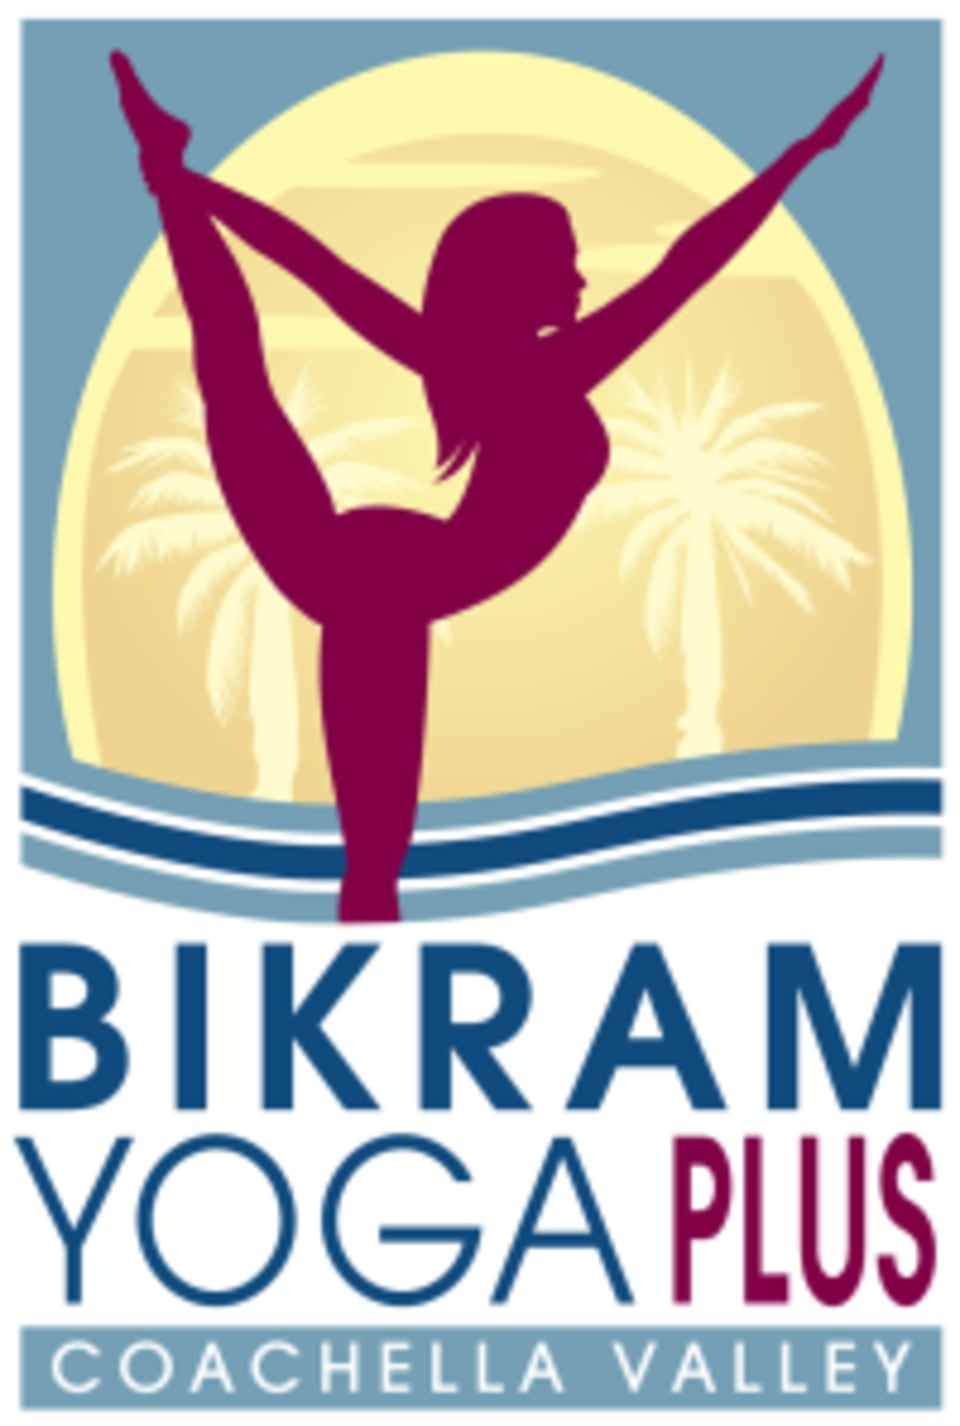 Bikram Yoga Plus logo